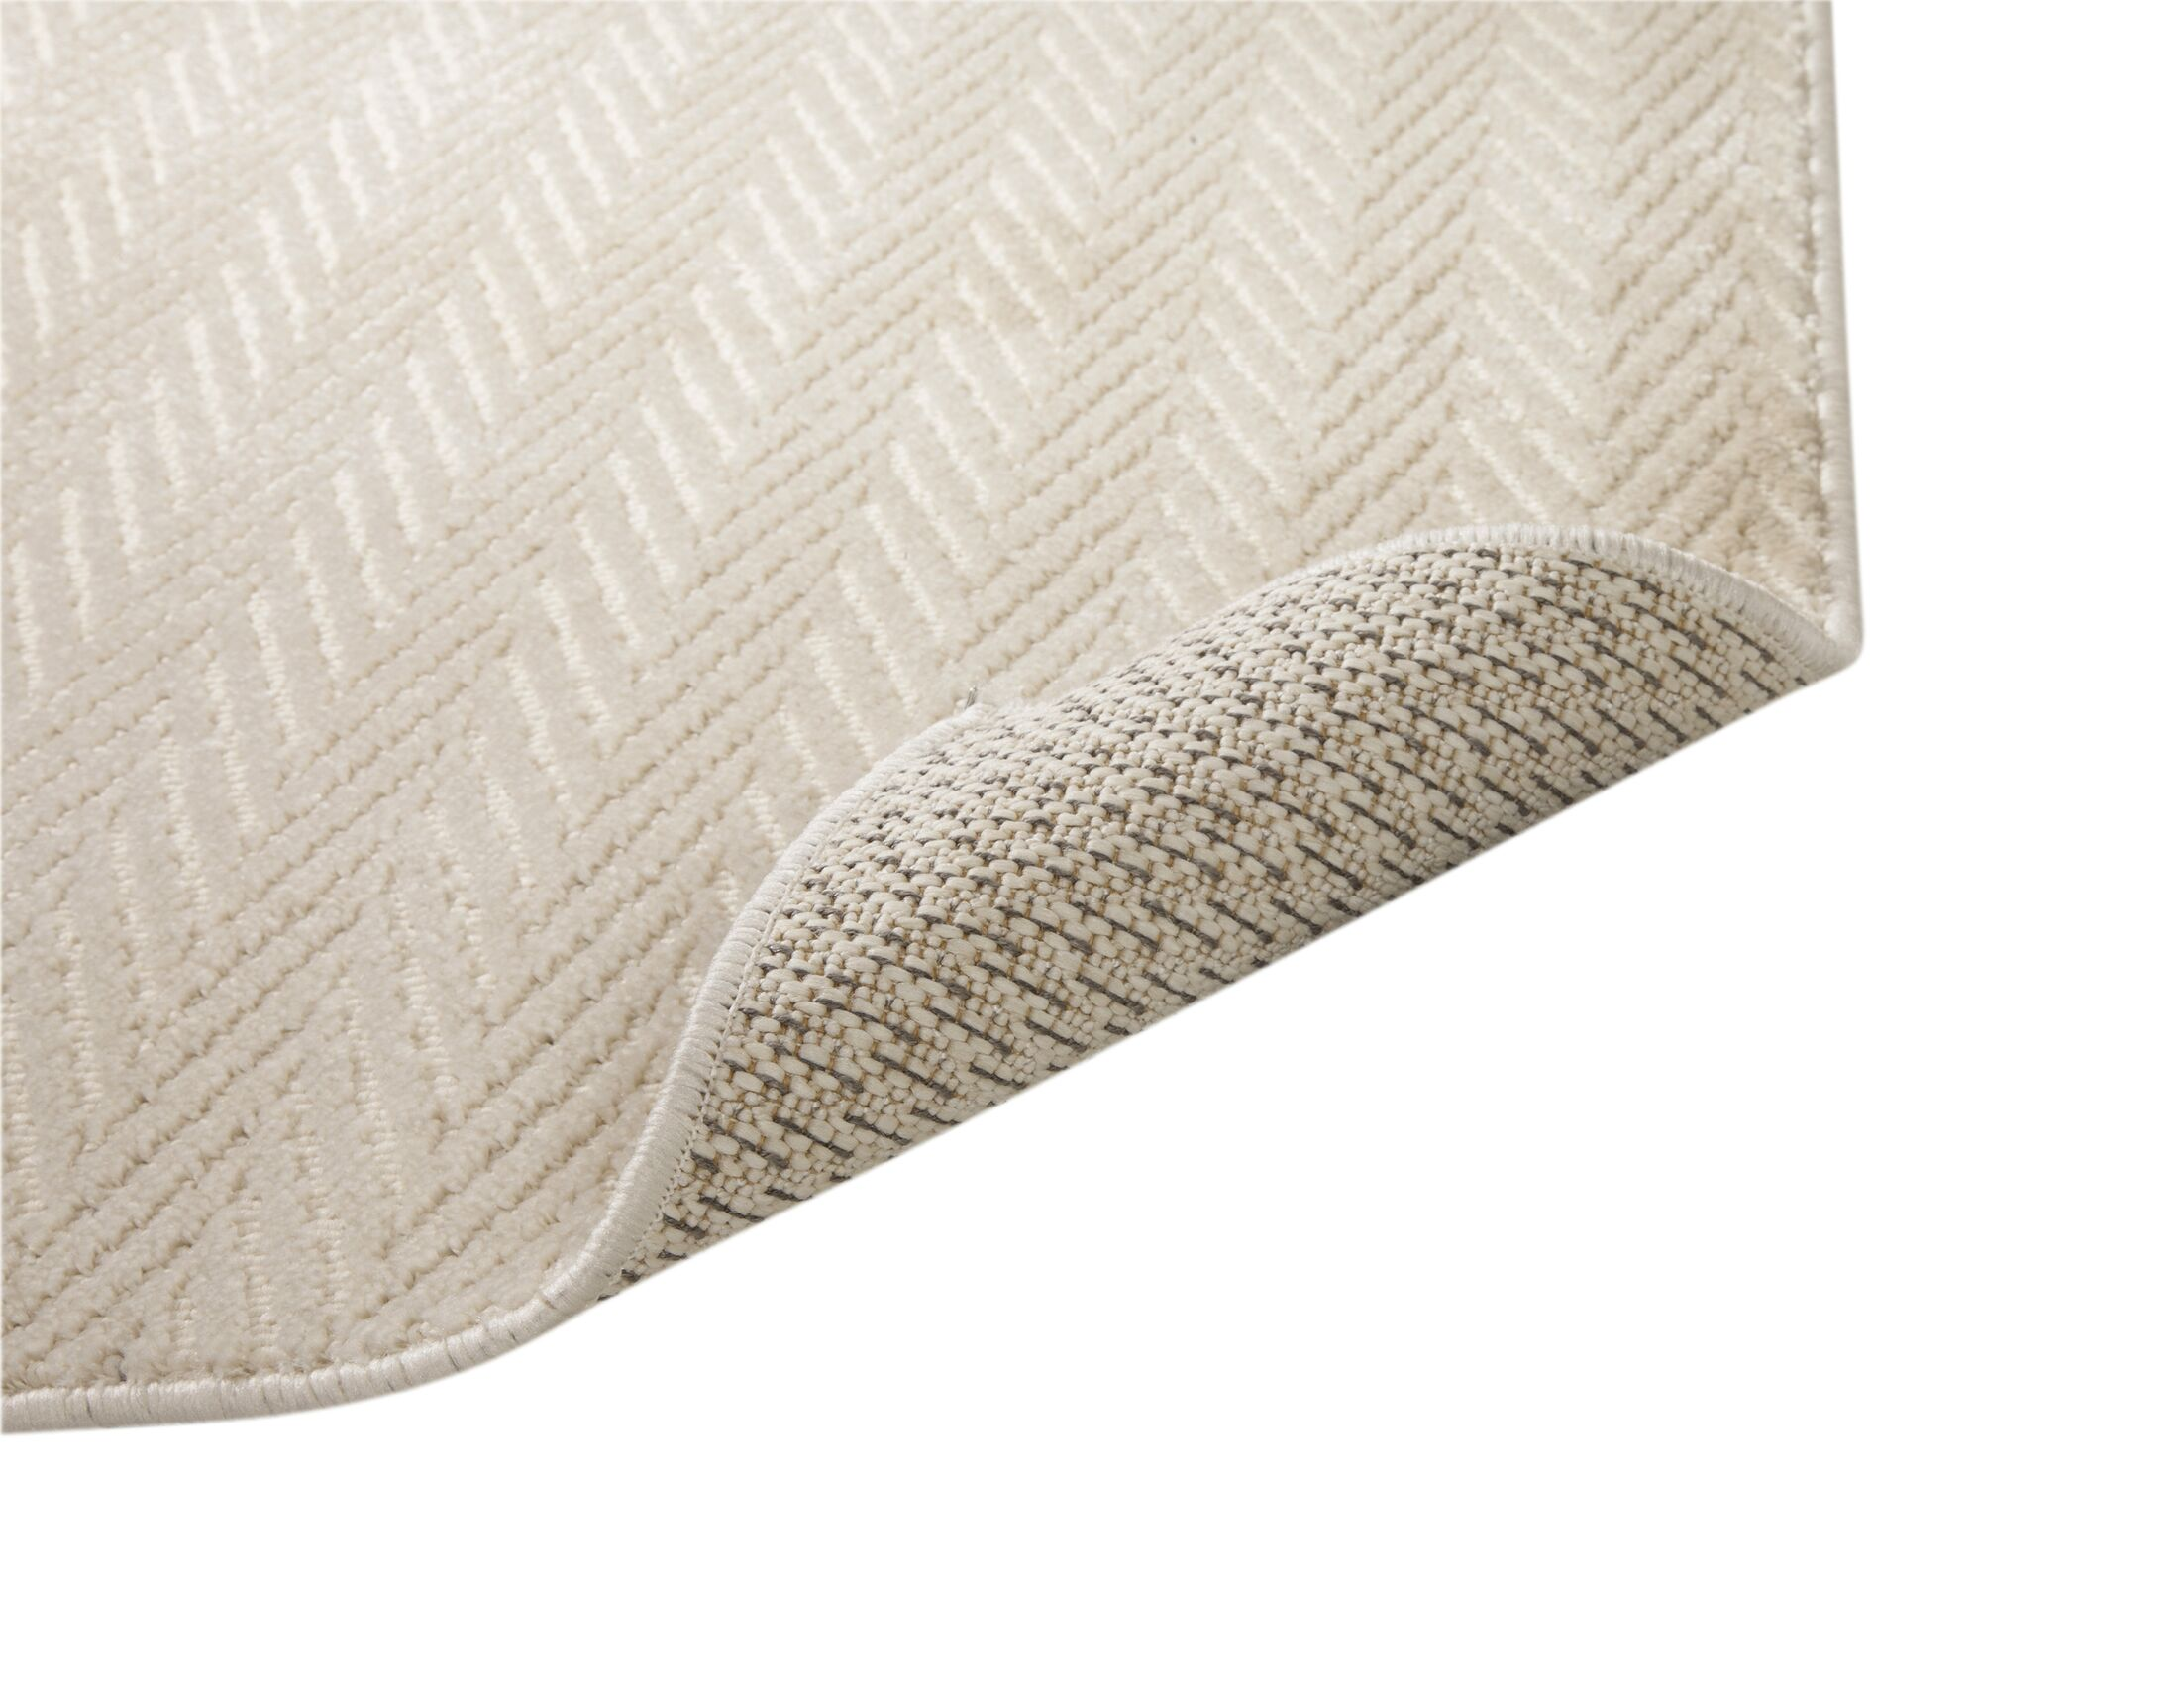 Highlands Ivory Area Rug Rug Size: 5' x 8'